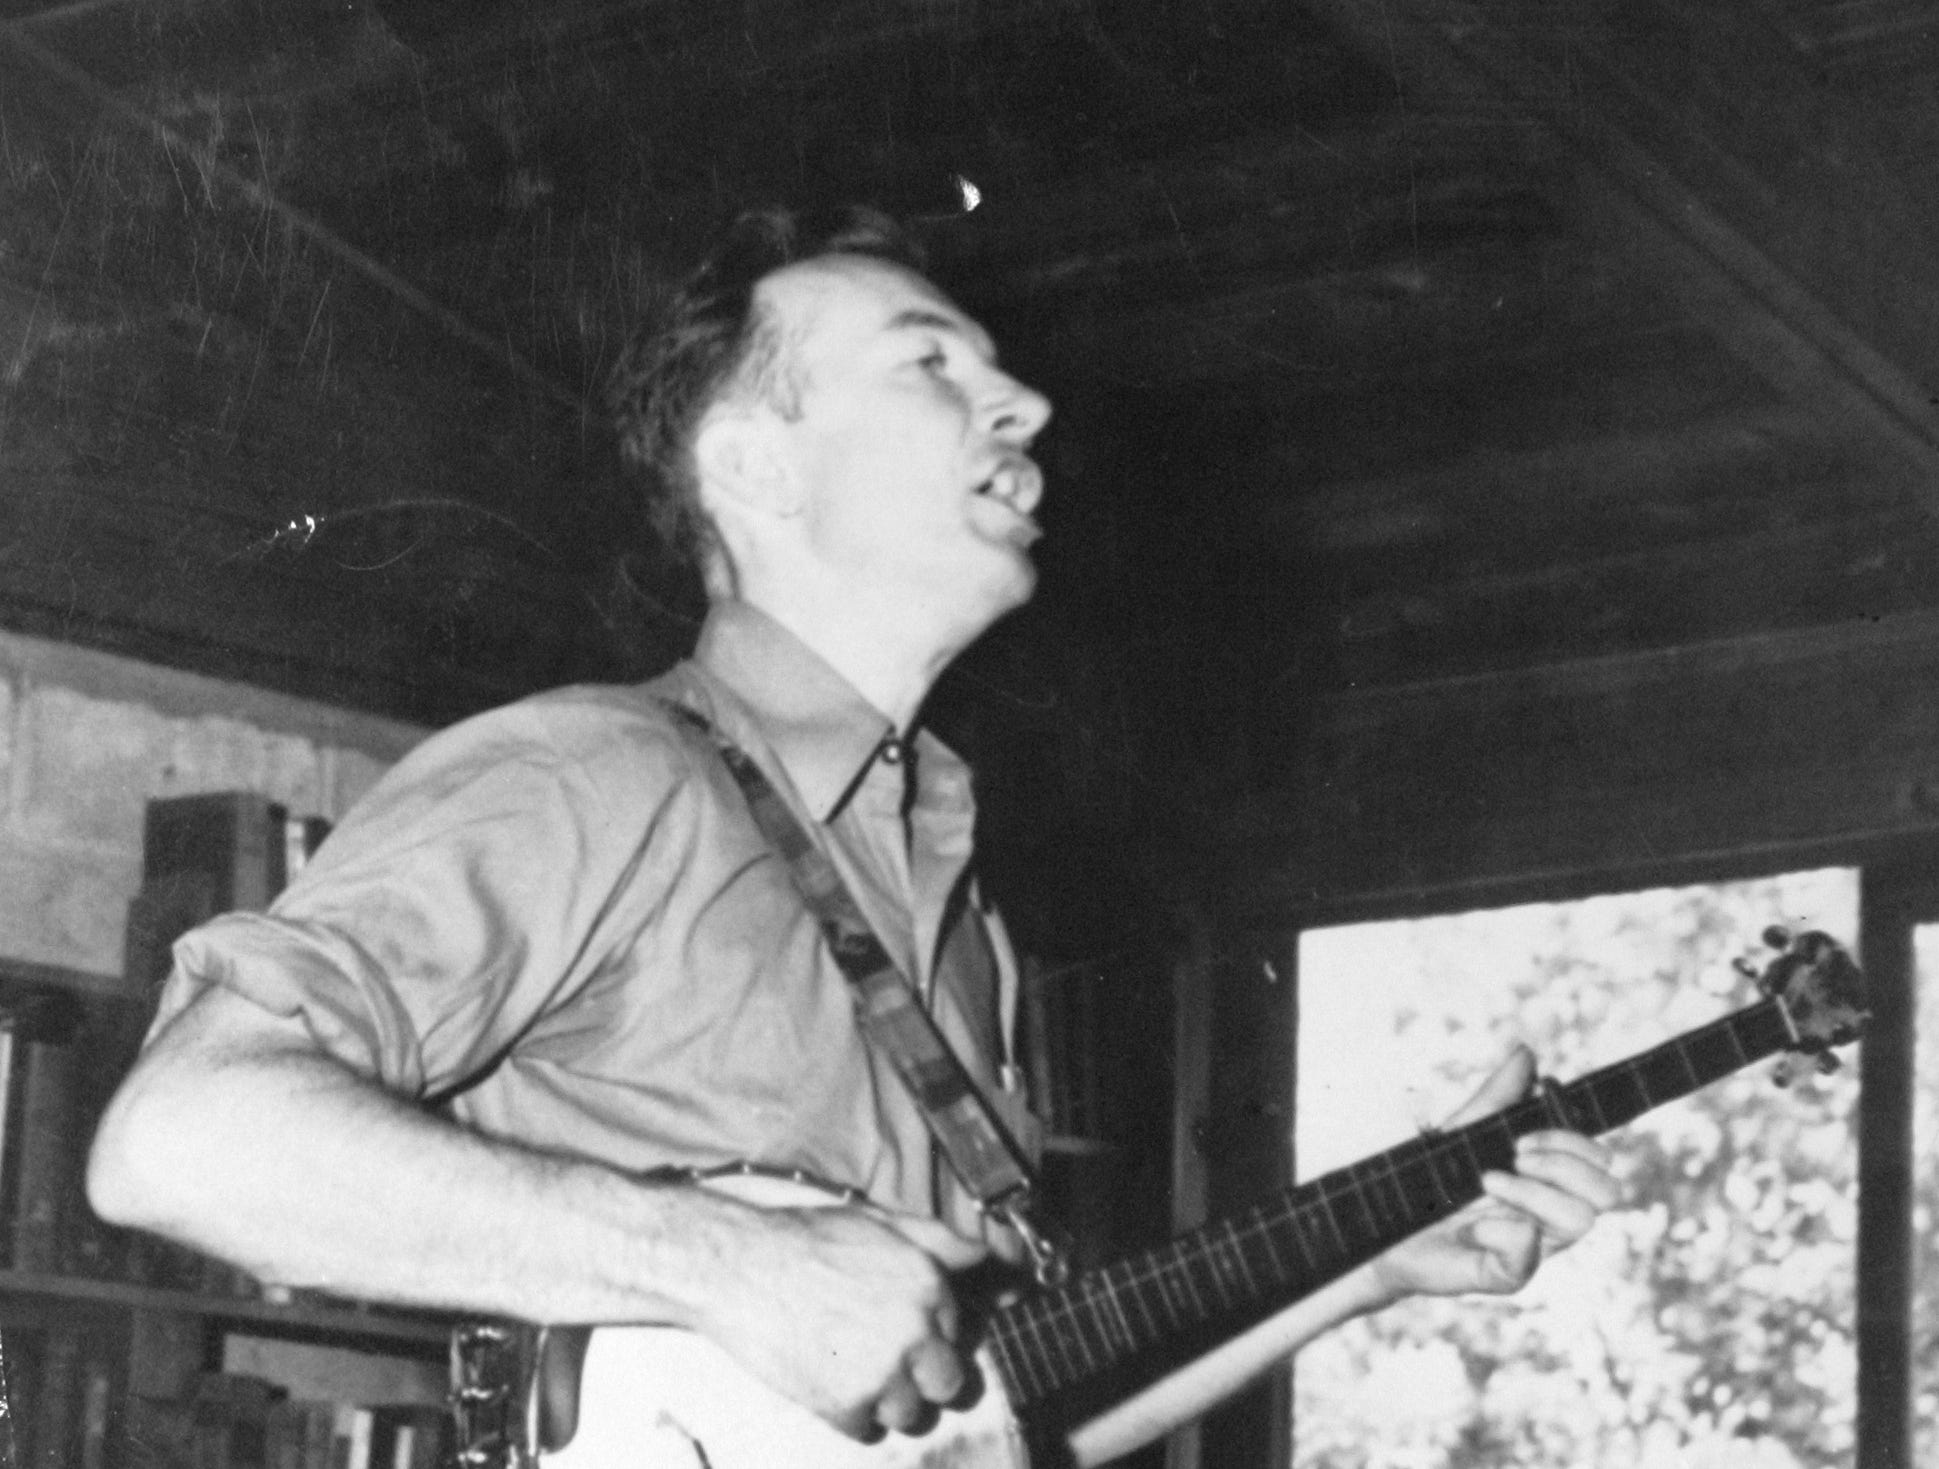 This 1959 photo provided by the Tennessee State Archives shows folk singer Pete Seeger performing at the Highlander Research and Education Center in Monteagle, Tenn. The little school tucked away in the east Tennessee mountains may have faded from the public spotlight, but it was once at the center of the struggle for civil rights.